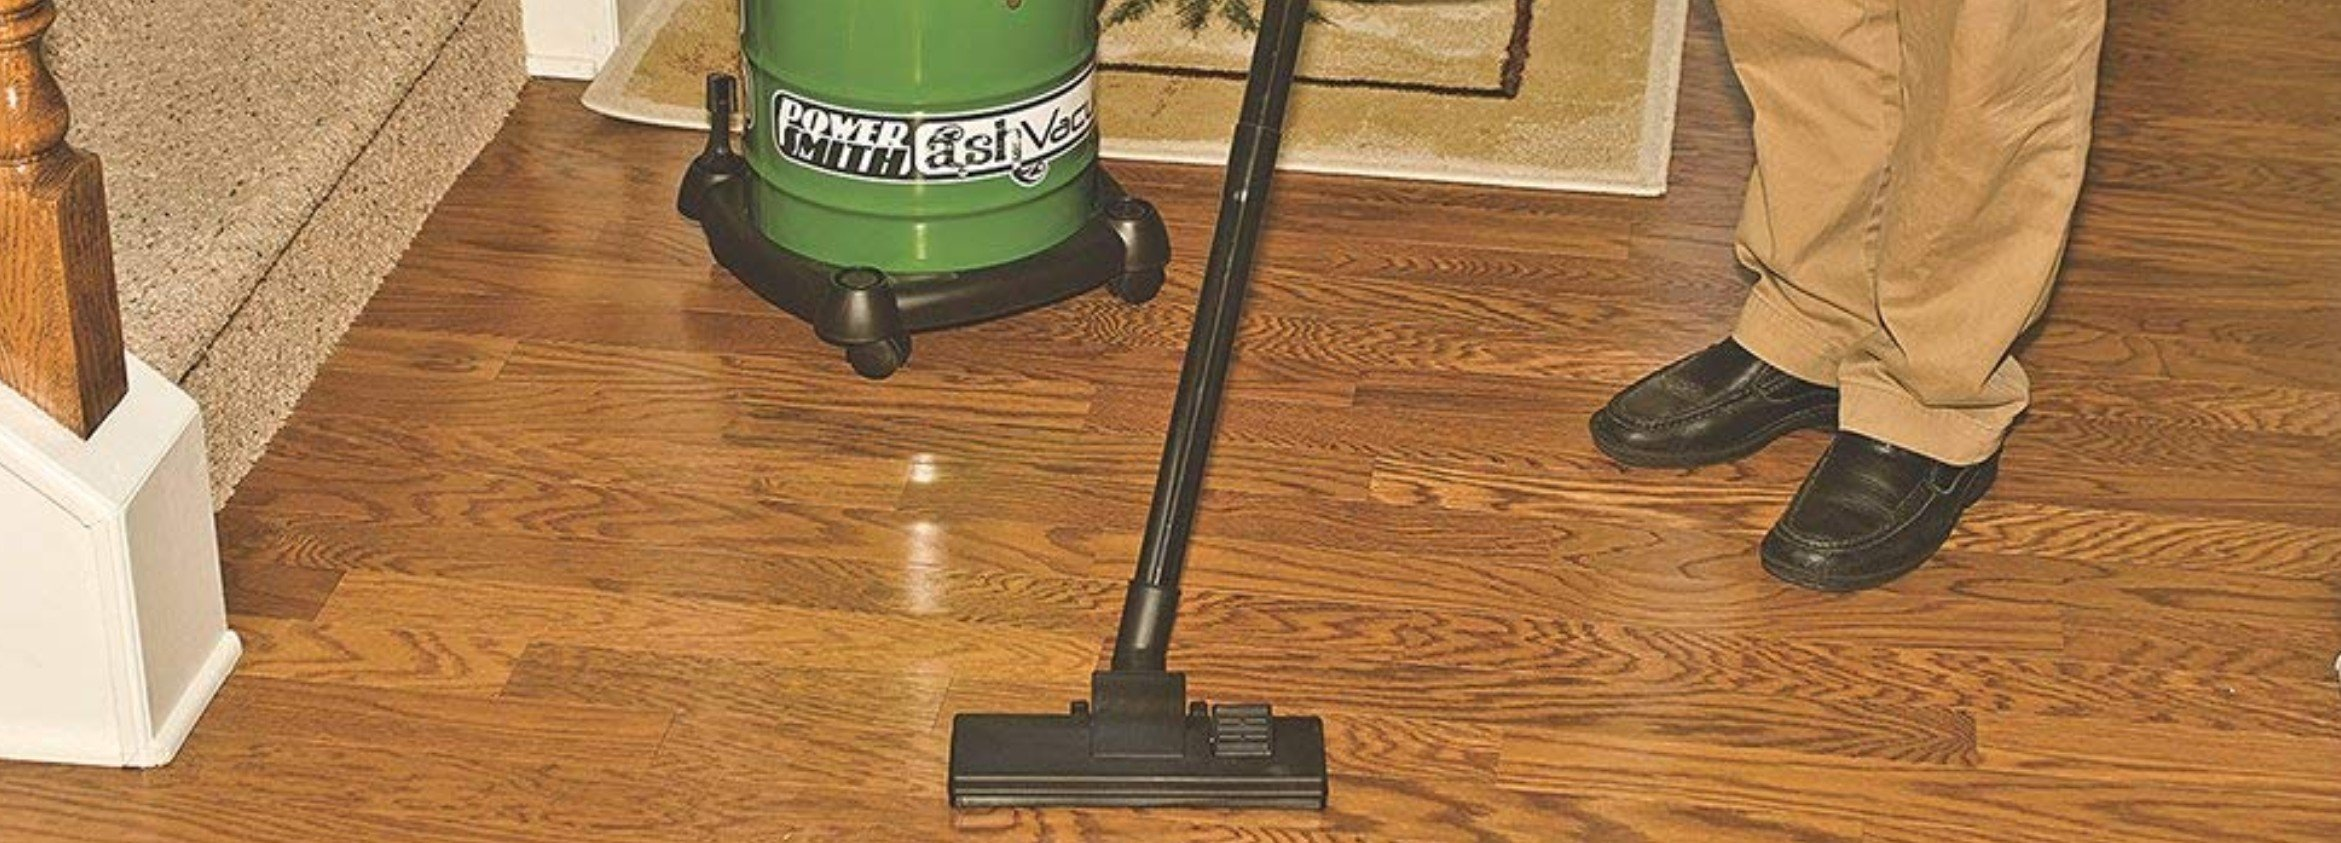 Best Ash Vacuum Cleaners Guide